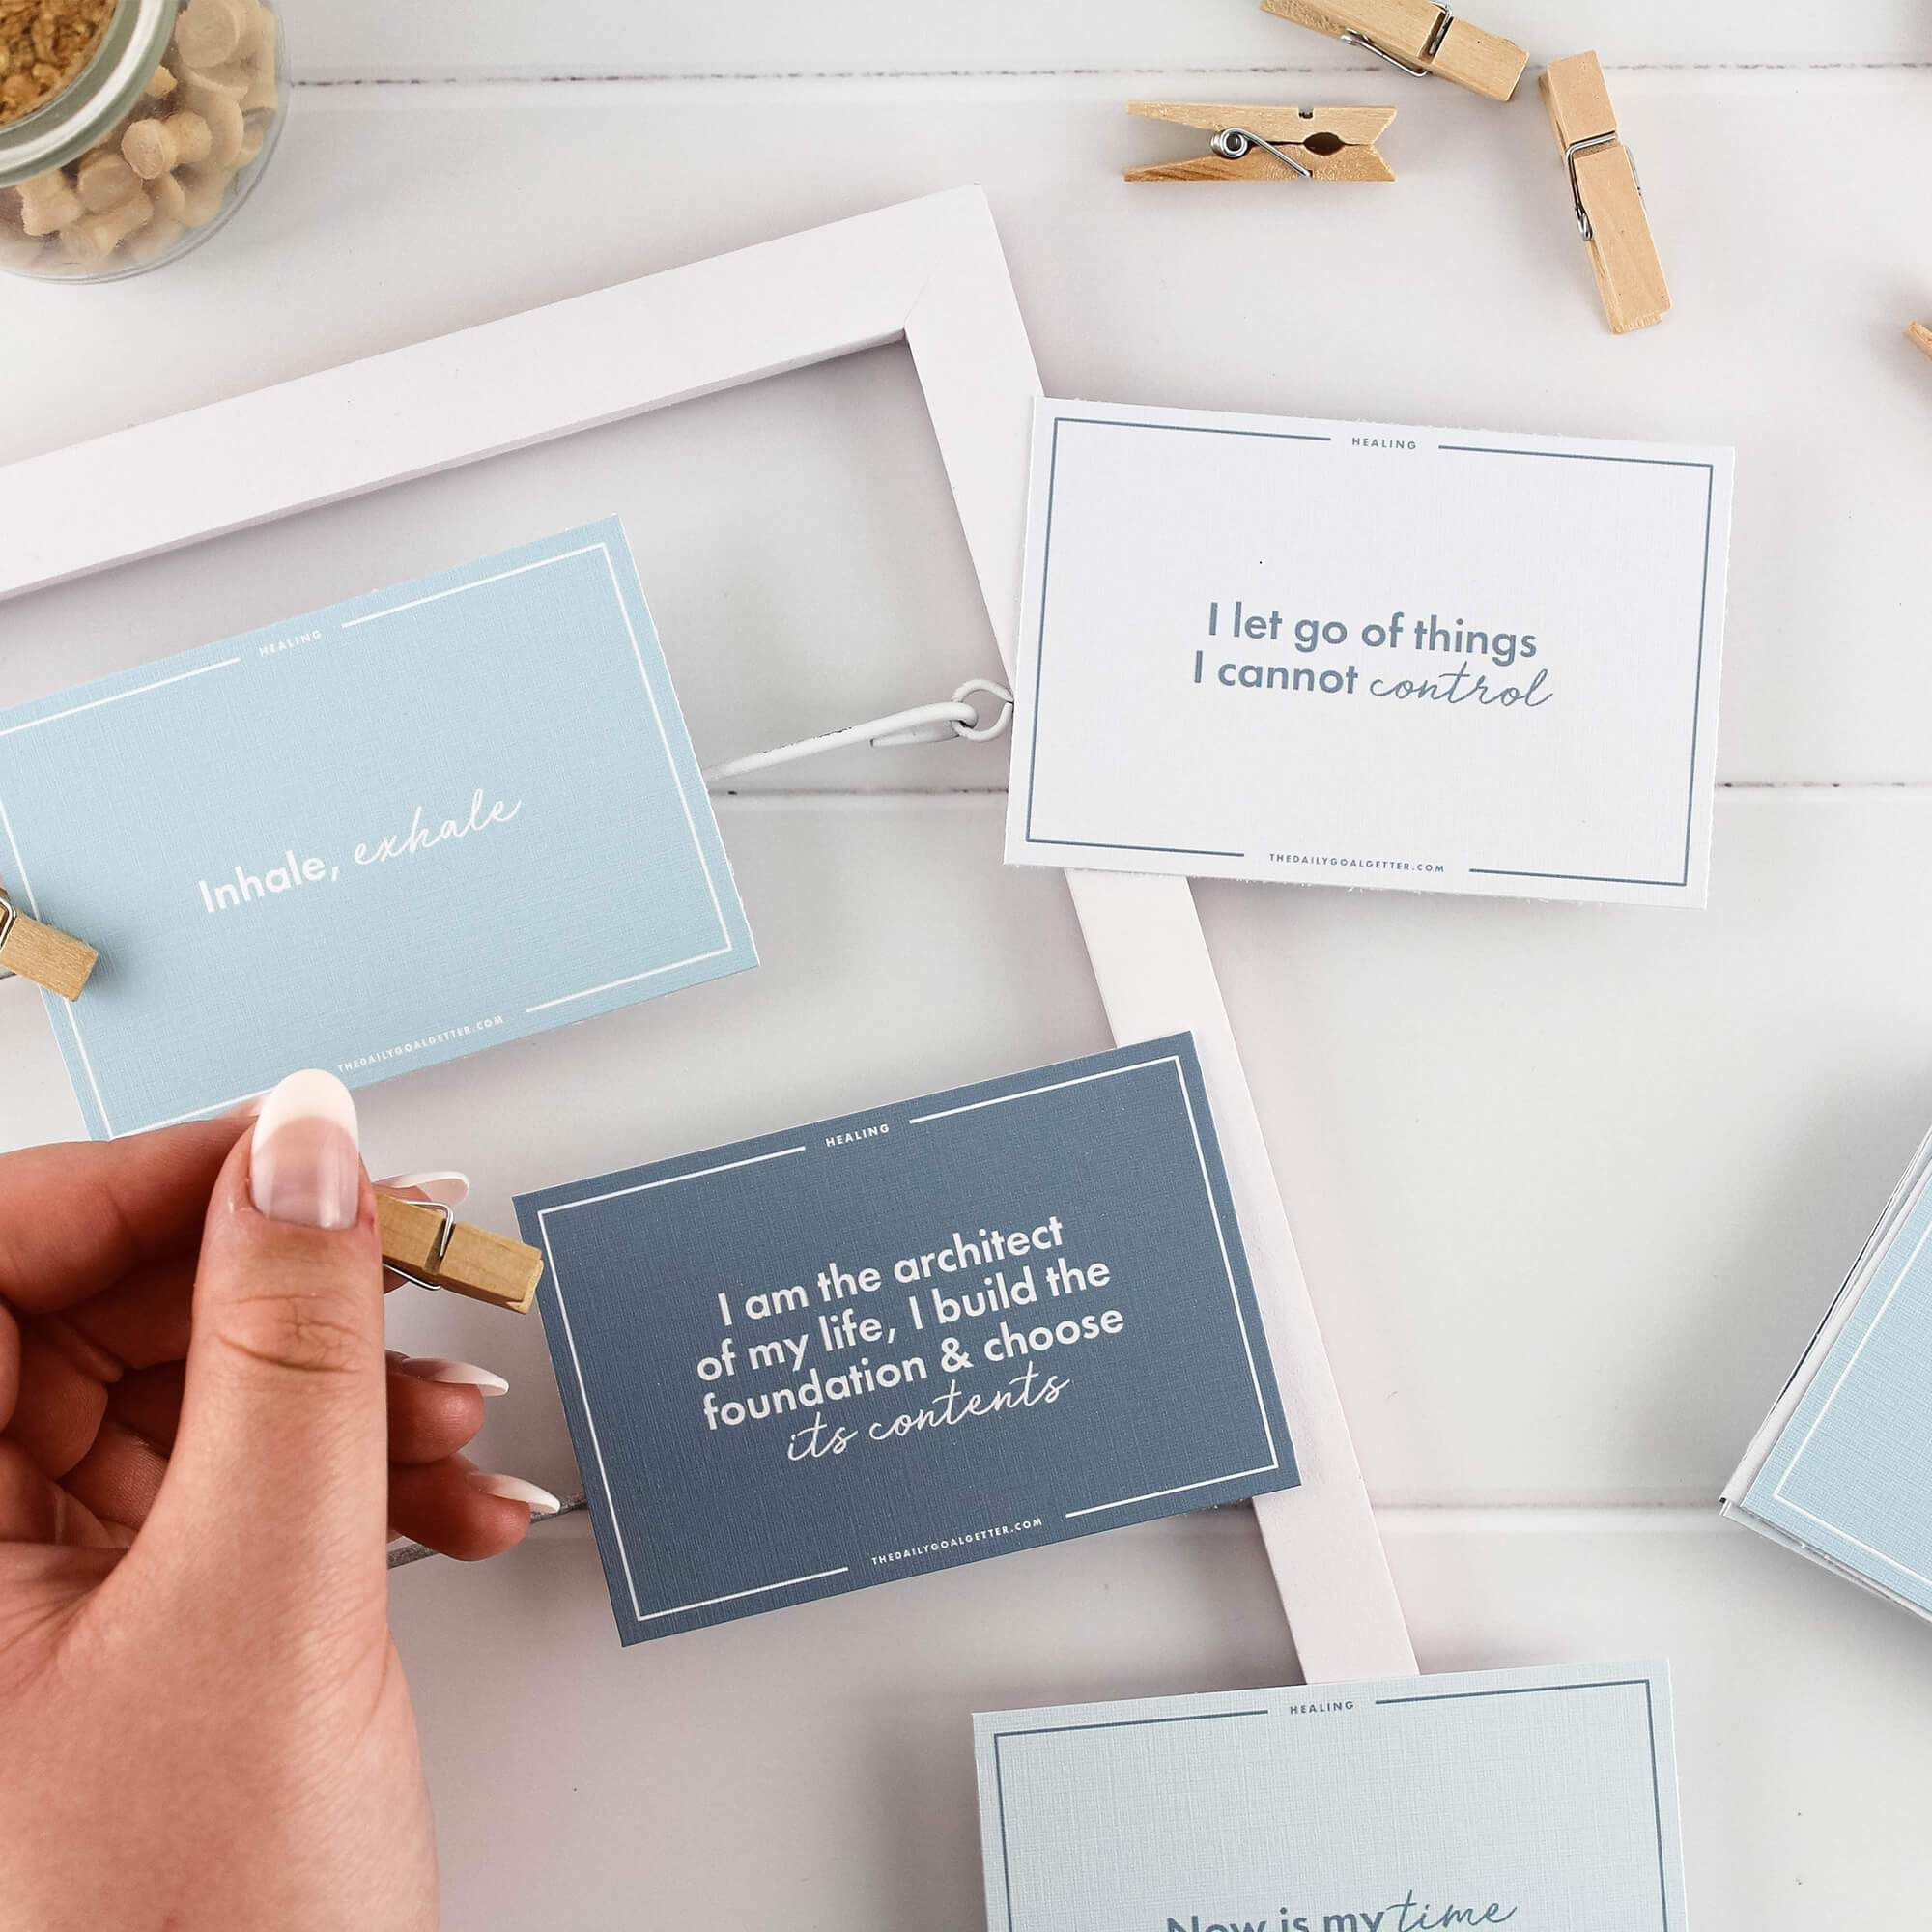 Healing Affirmation Cards to Heal the Mind, Body & Spirit